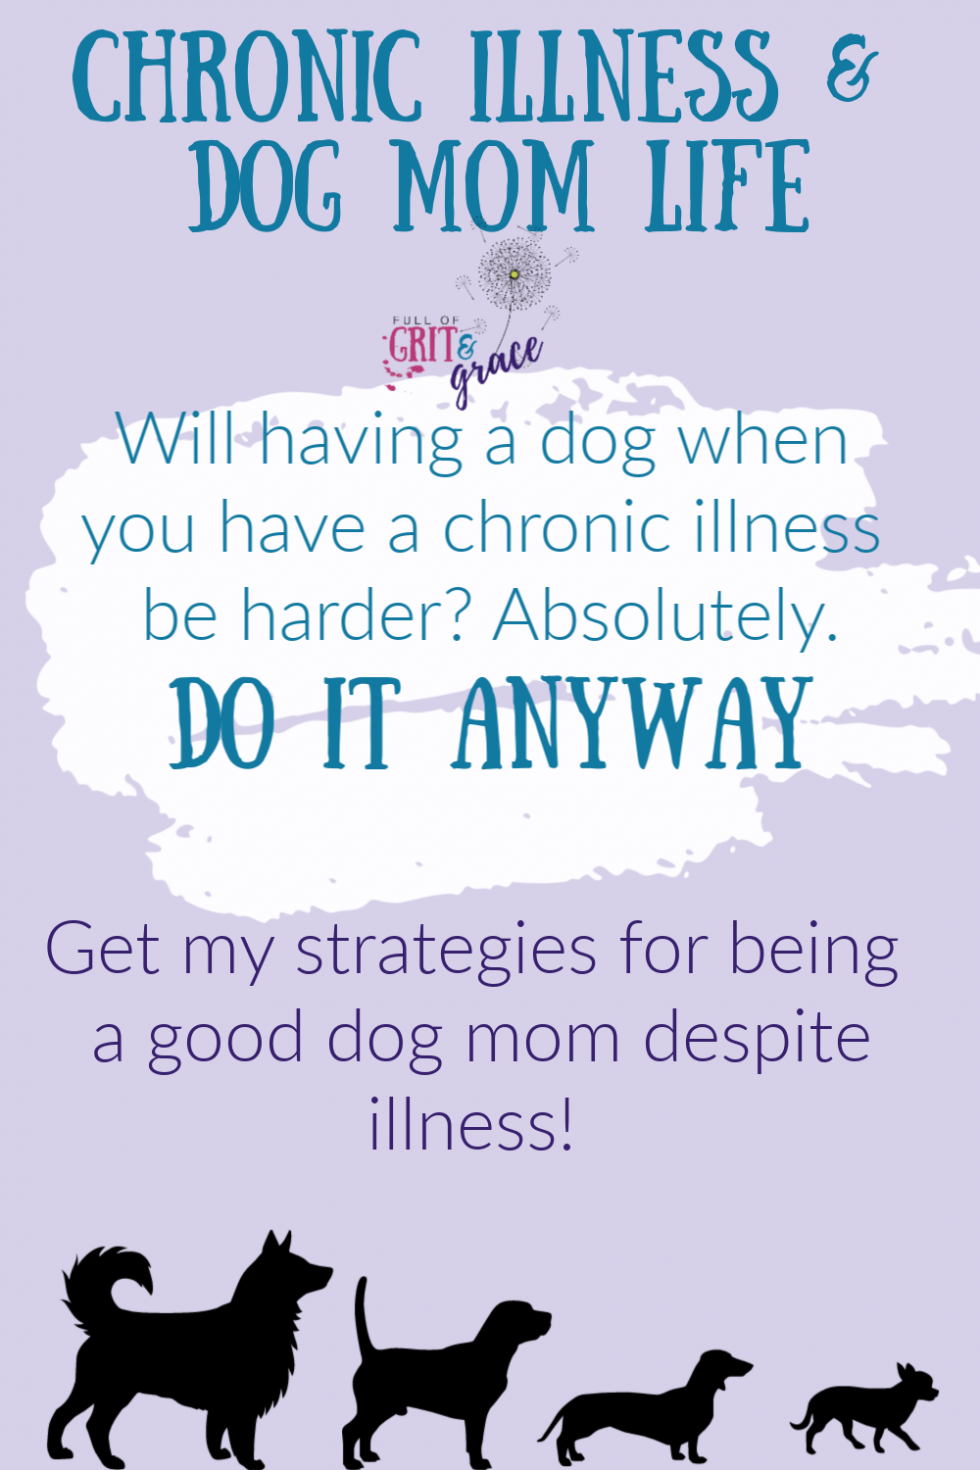 Will having a dog when you have a chronic illness make life harder? Yes. But Here's why (and how) I recommend it anyway!